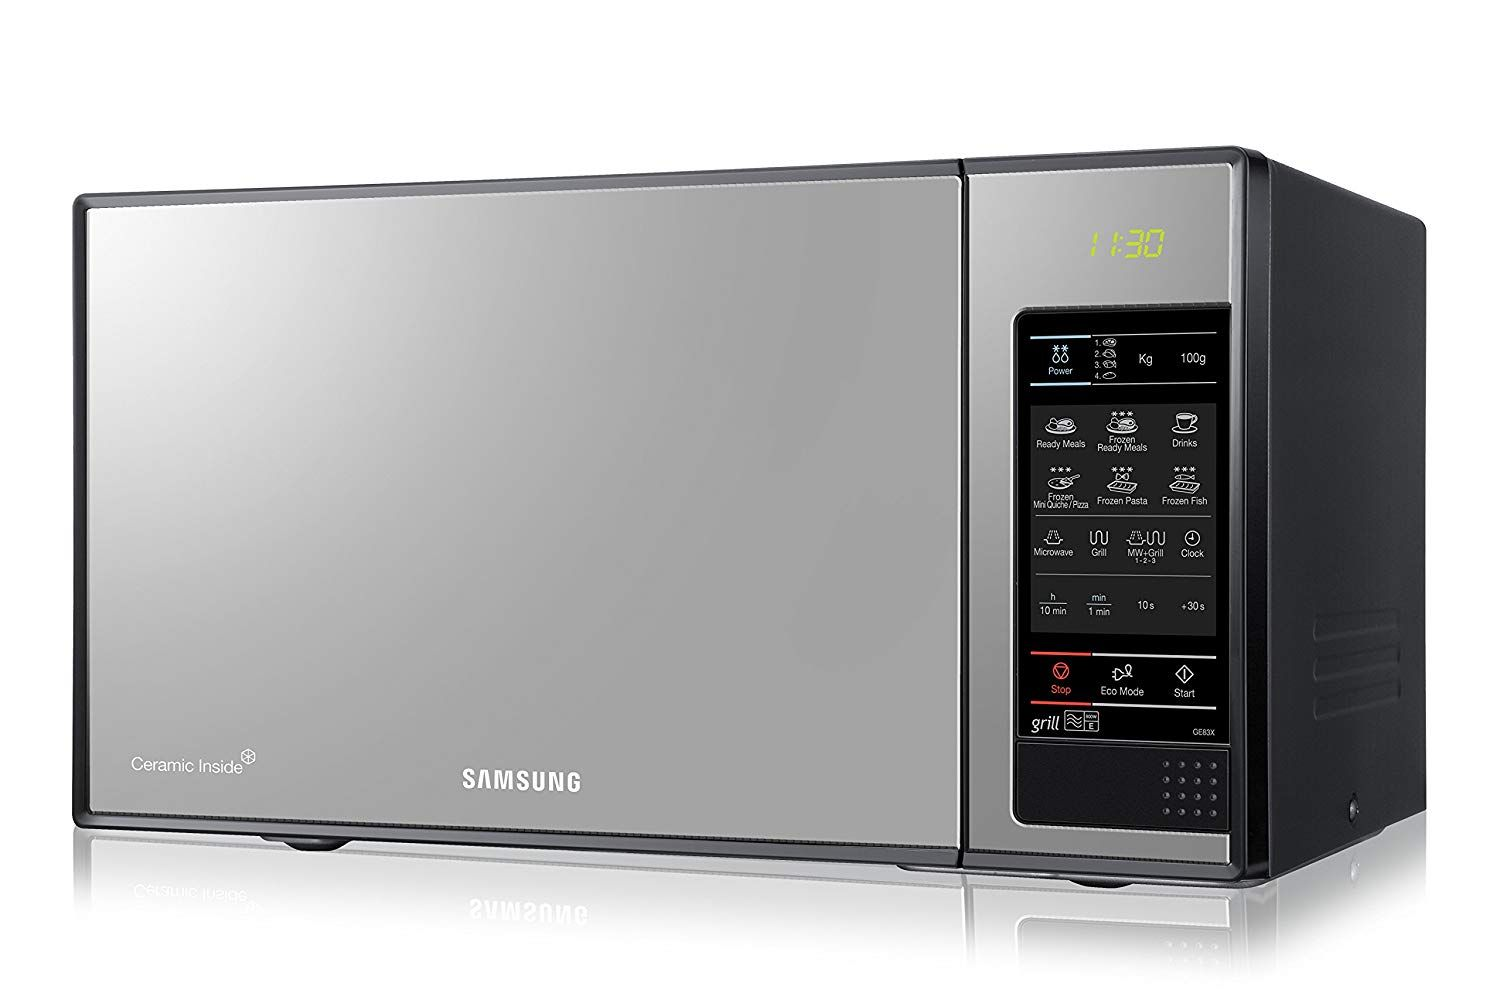 SAMSUNG MICROWAVE OVEN DIGITAL BLACK